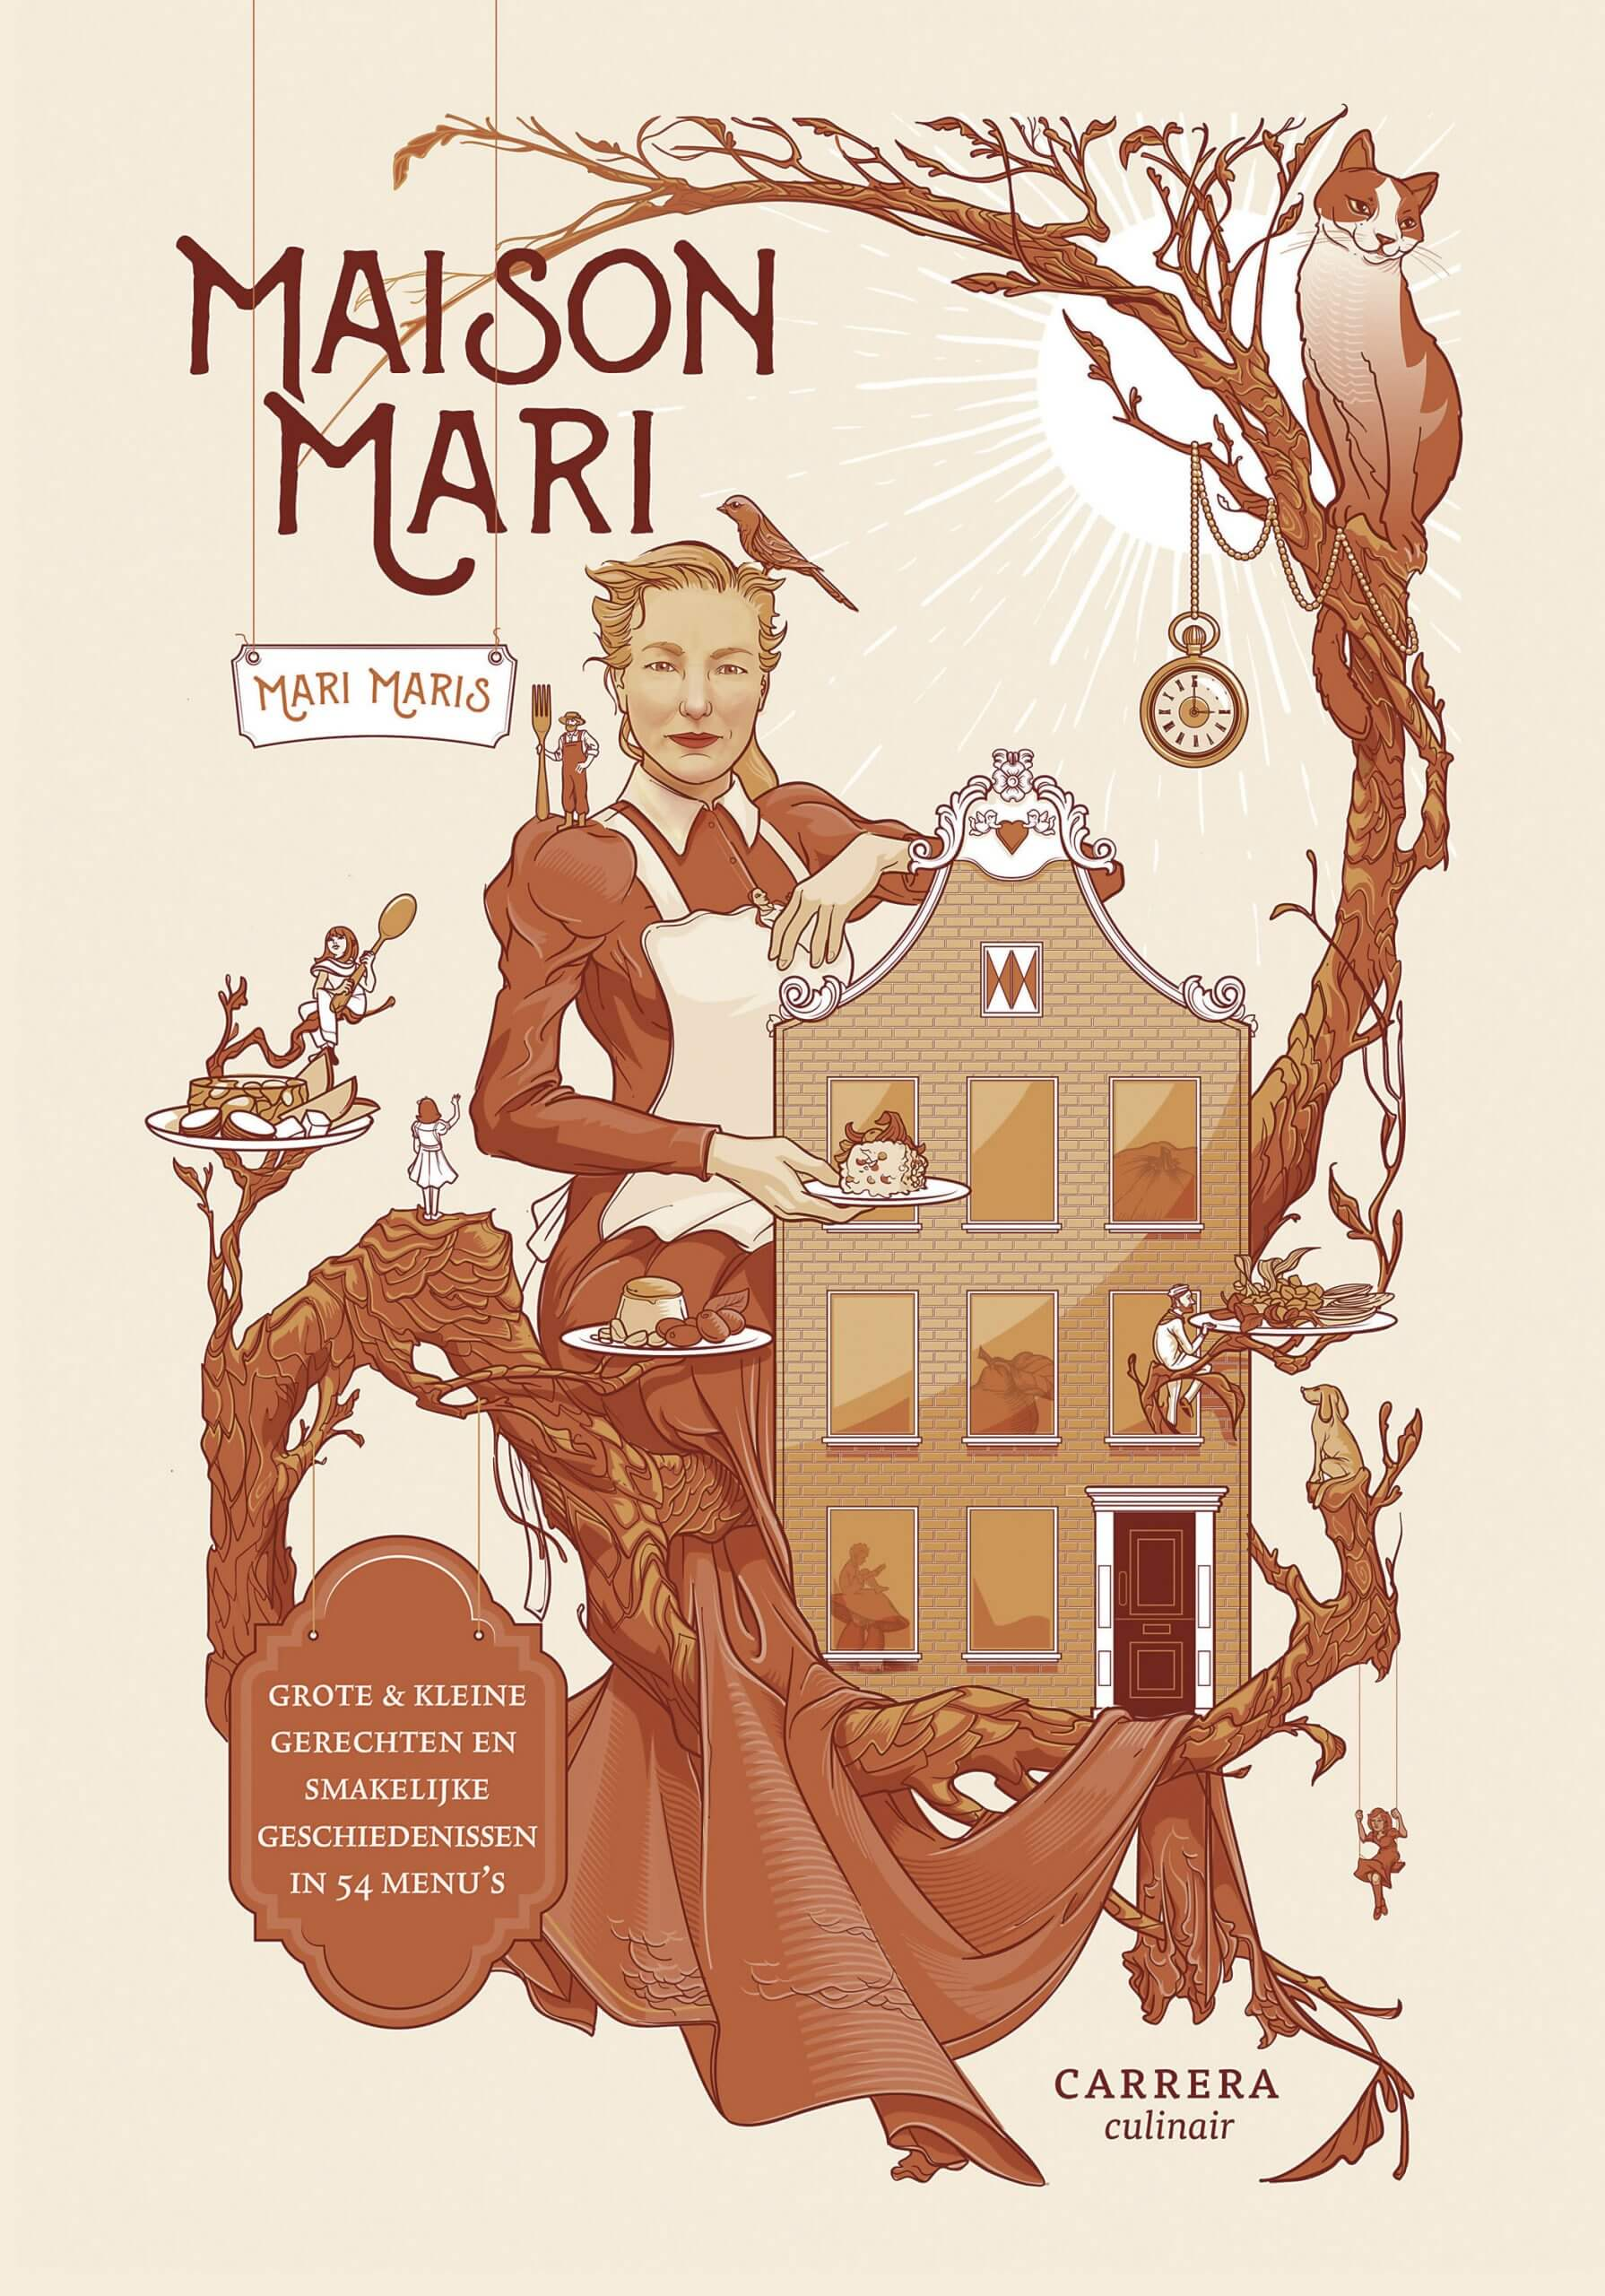 Kookboek review: Maison Mari